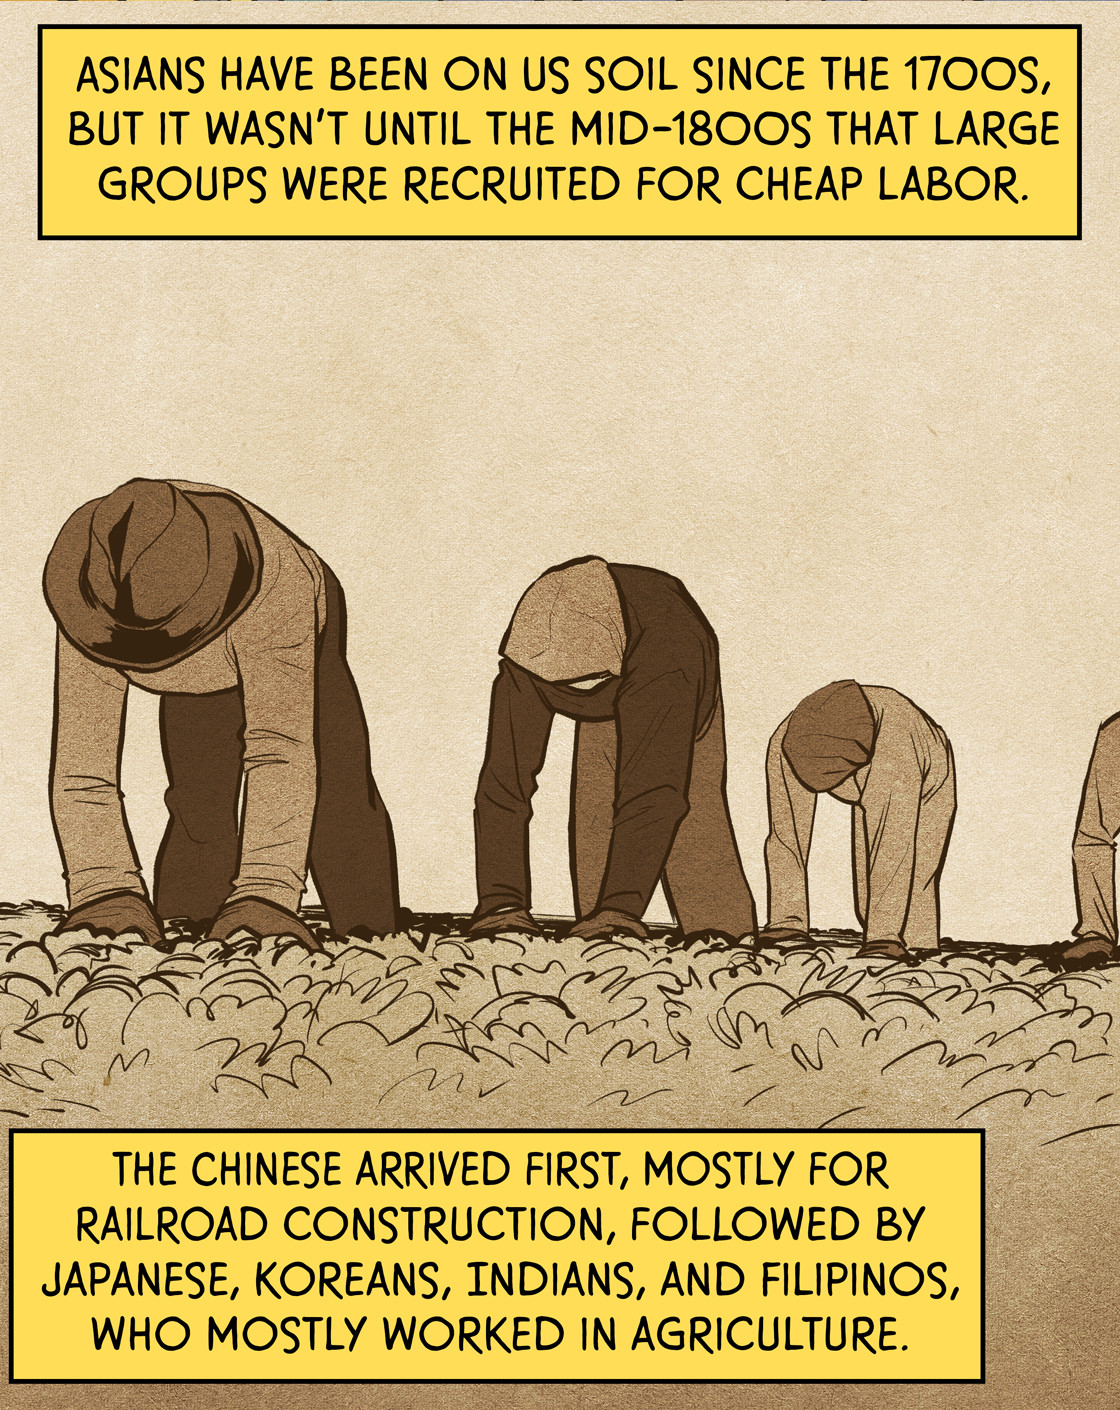 Asians have been on US soil since the 1700s, but it wasn't until the mid-1800s that large groups were recruited for cheap labor. The Chinese arrived first, mostly for railroad construction, followed by Japanese, Koreans, Asian Indians, and Filipinos, who mostly worked in agriculture.